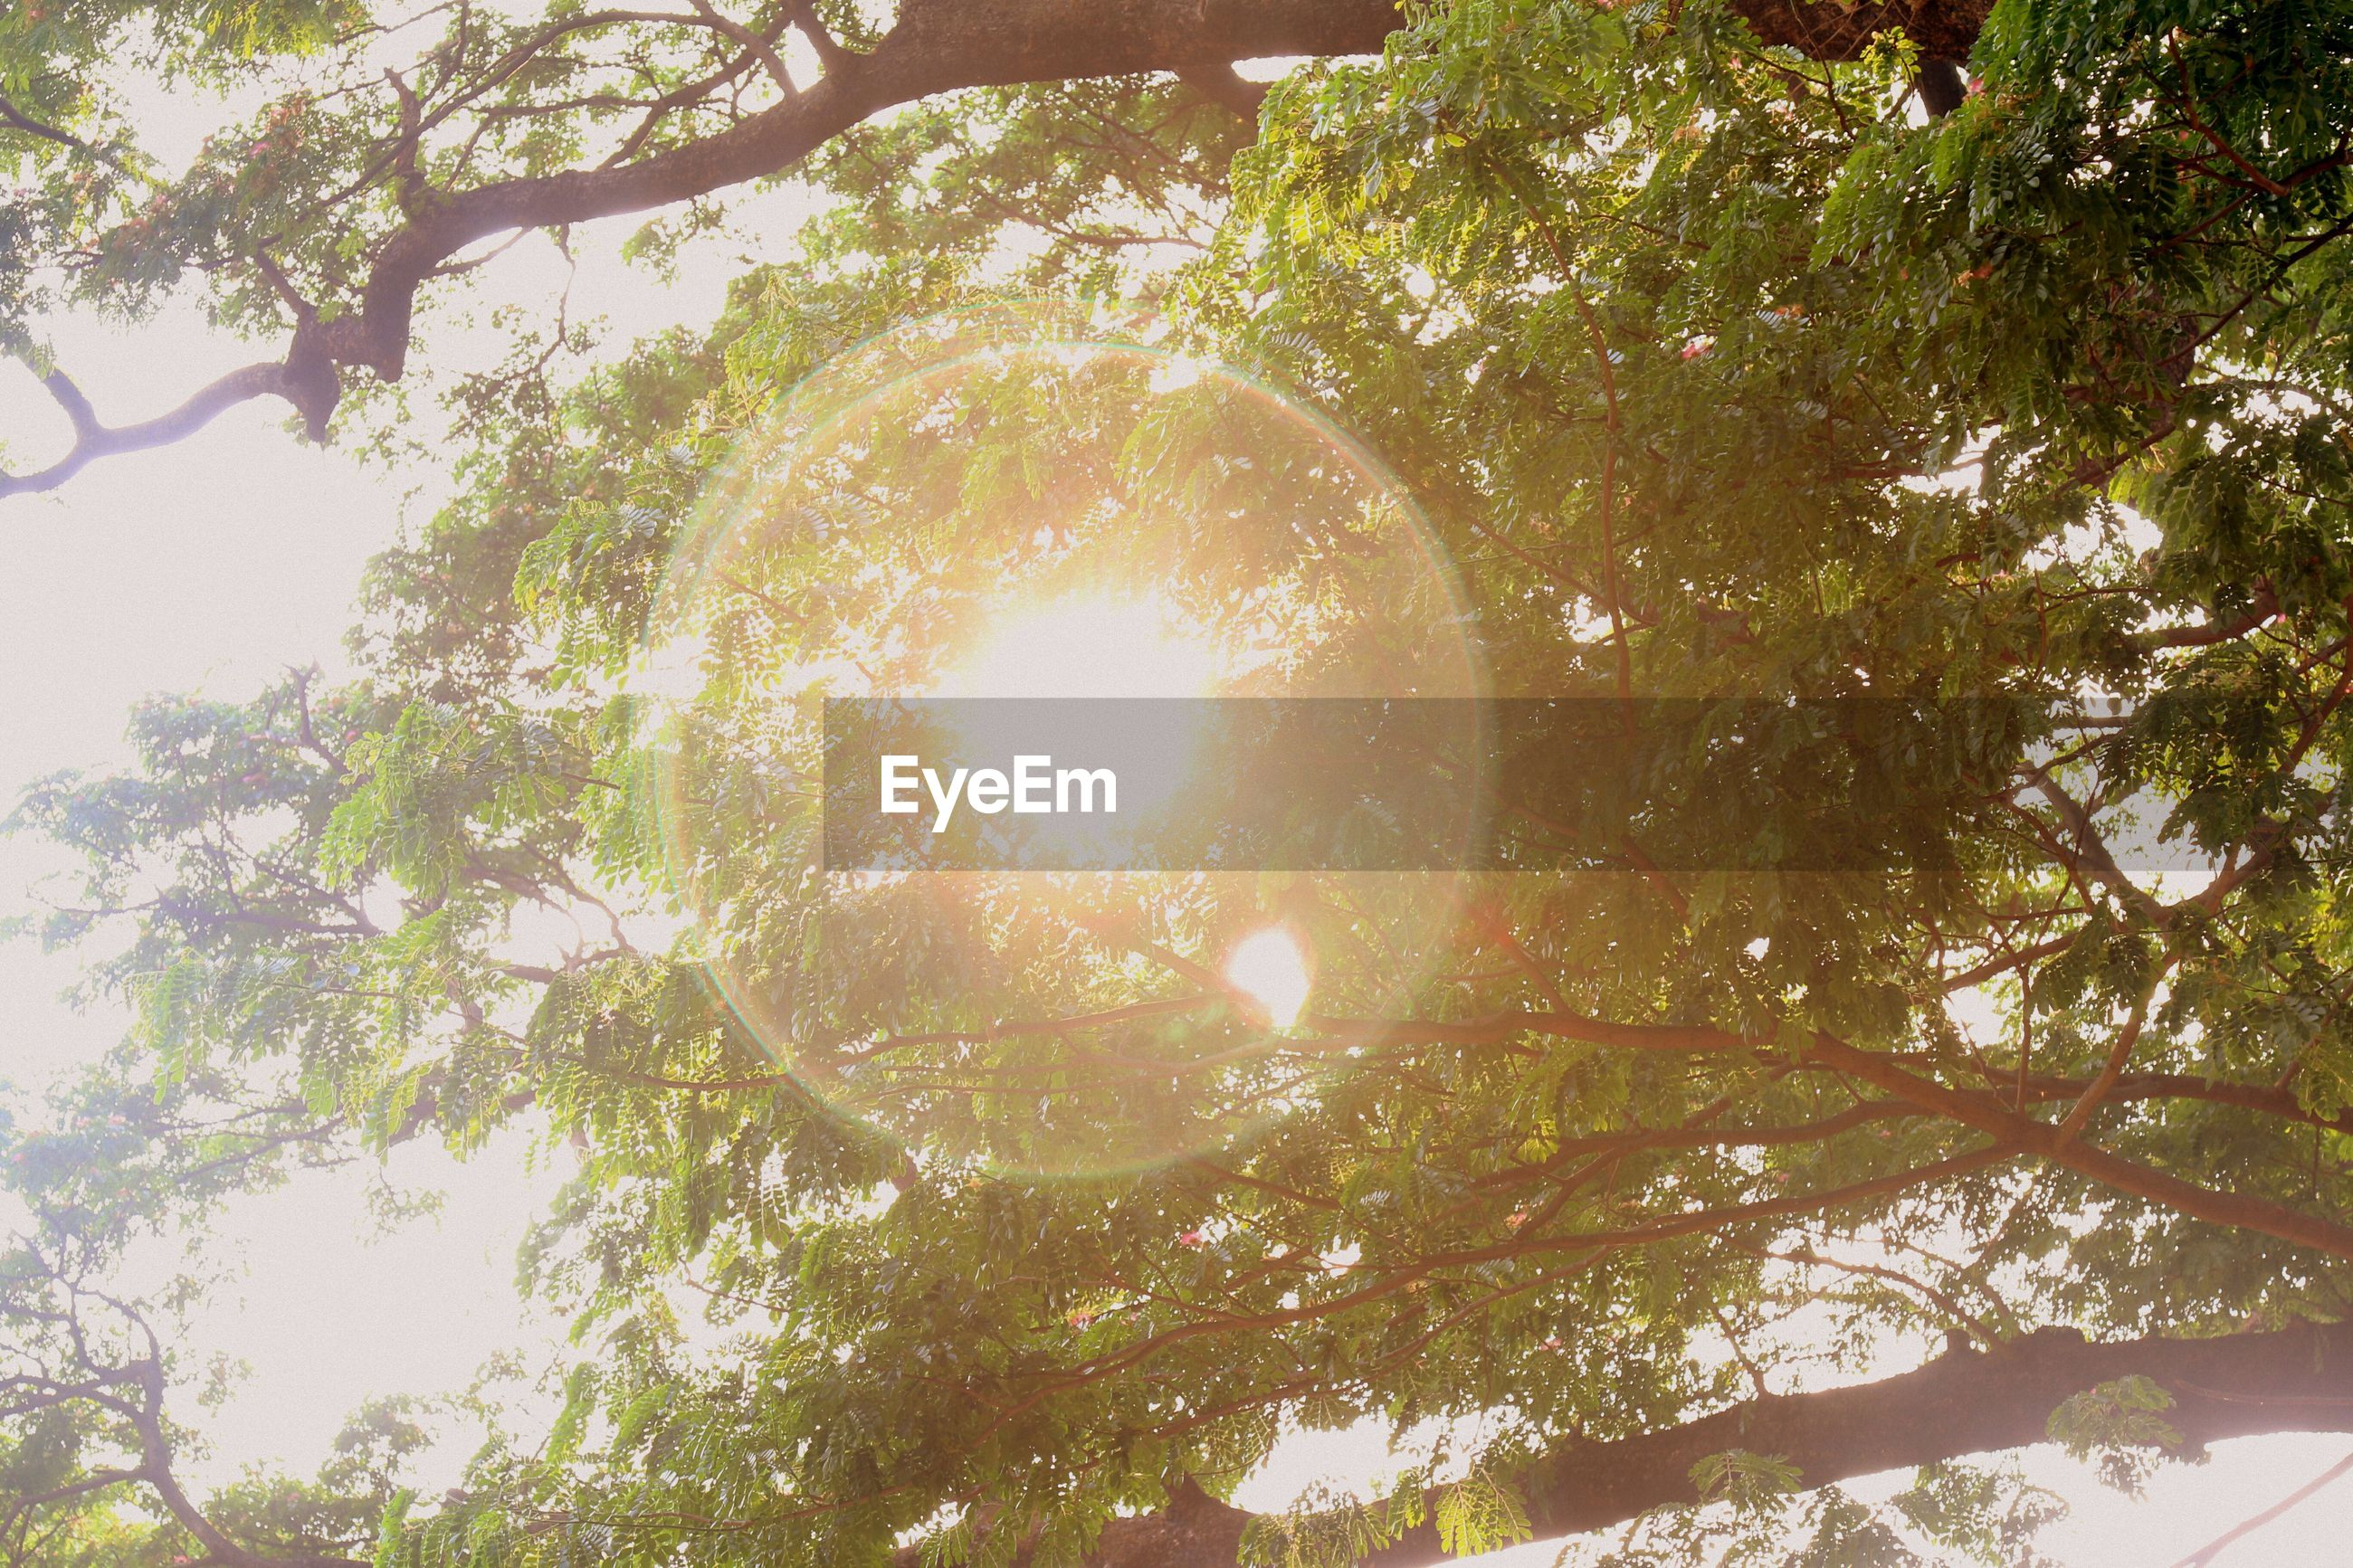 tree, low angle view, branch, growth, nature, sunlight, green color, tranquility, sun, no people, directly below, day, beauty in nature, outdoors, leaf, sky, close-up, lens flare, circle, tree trunk